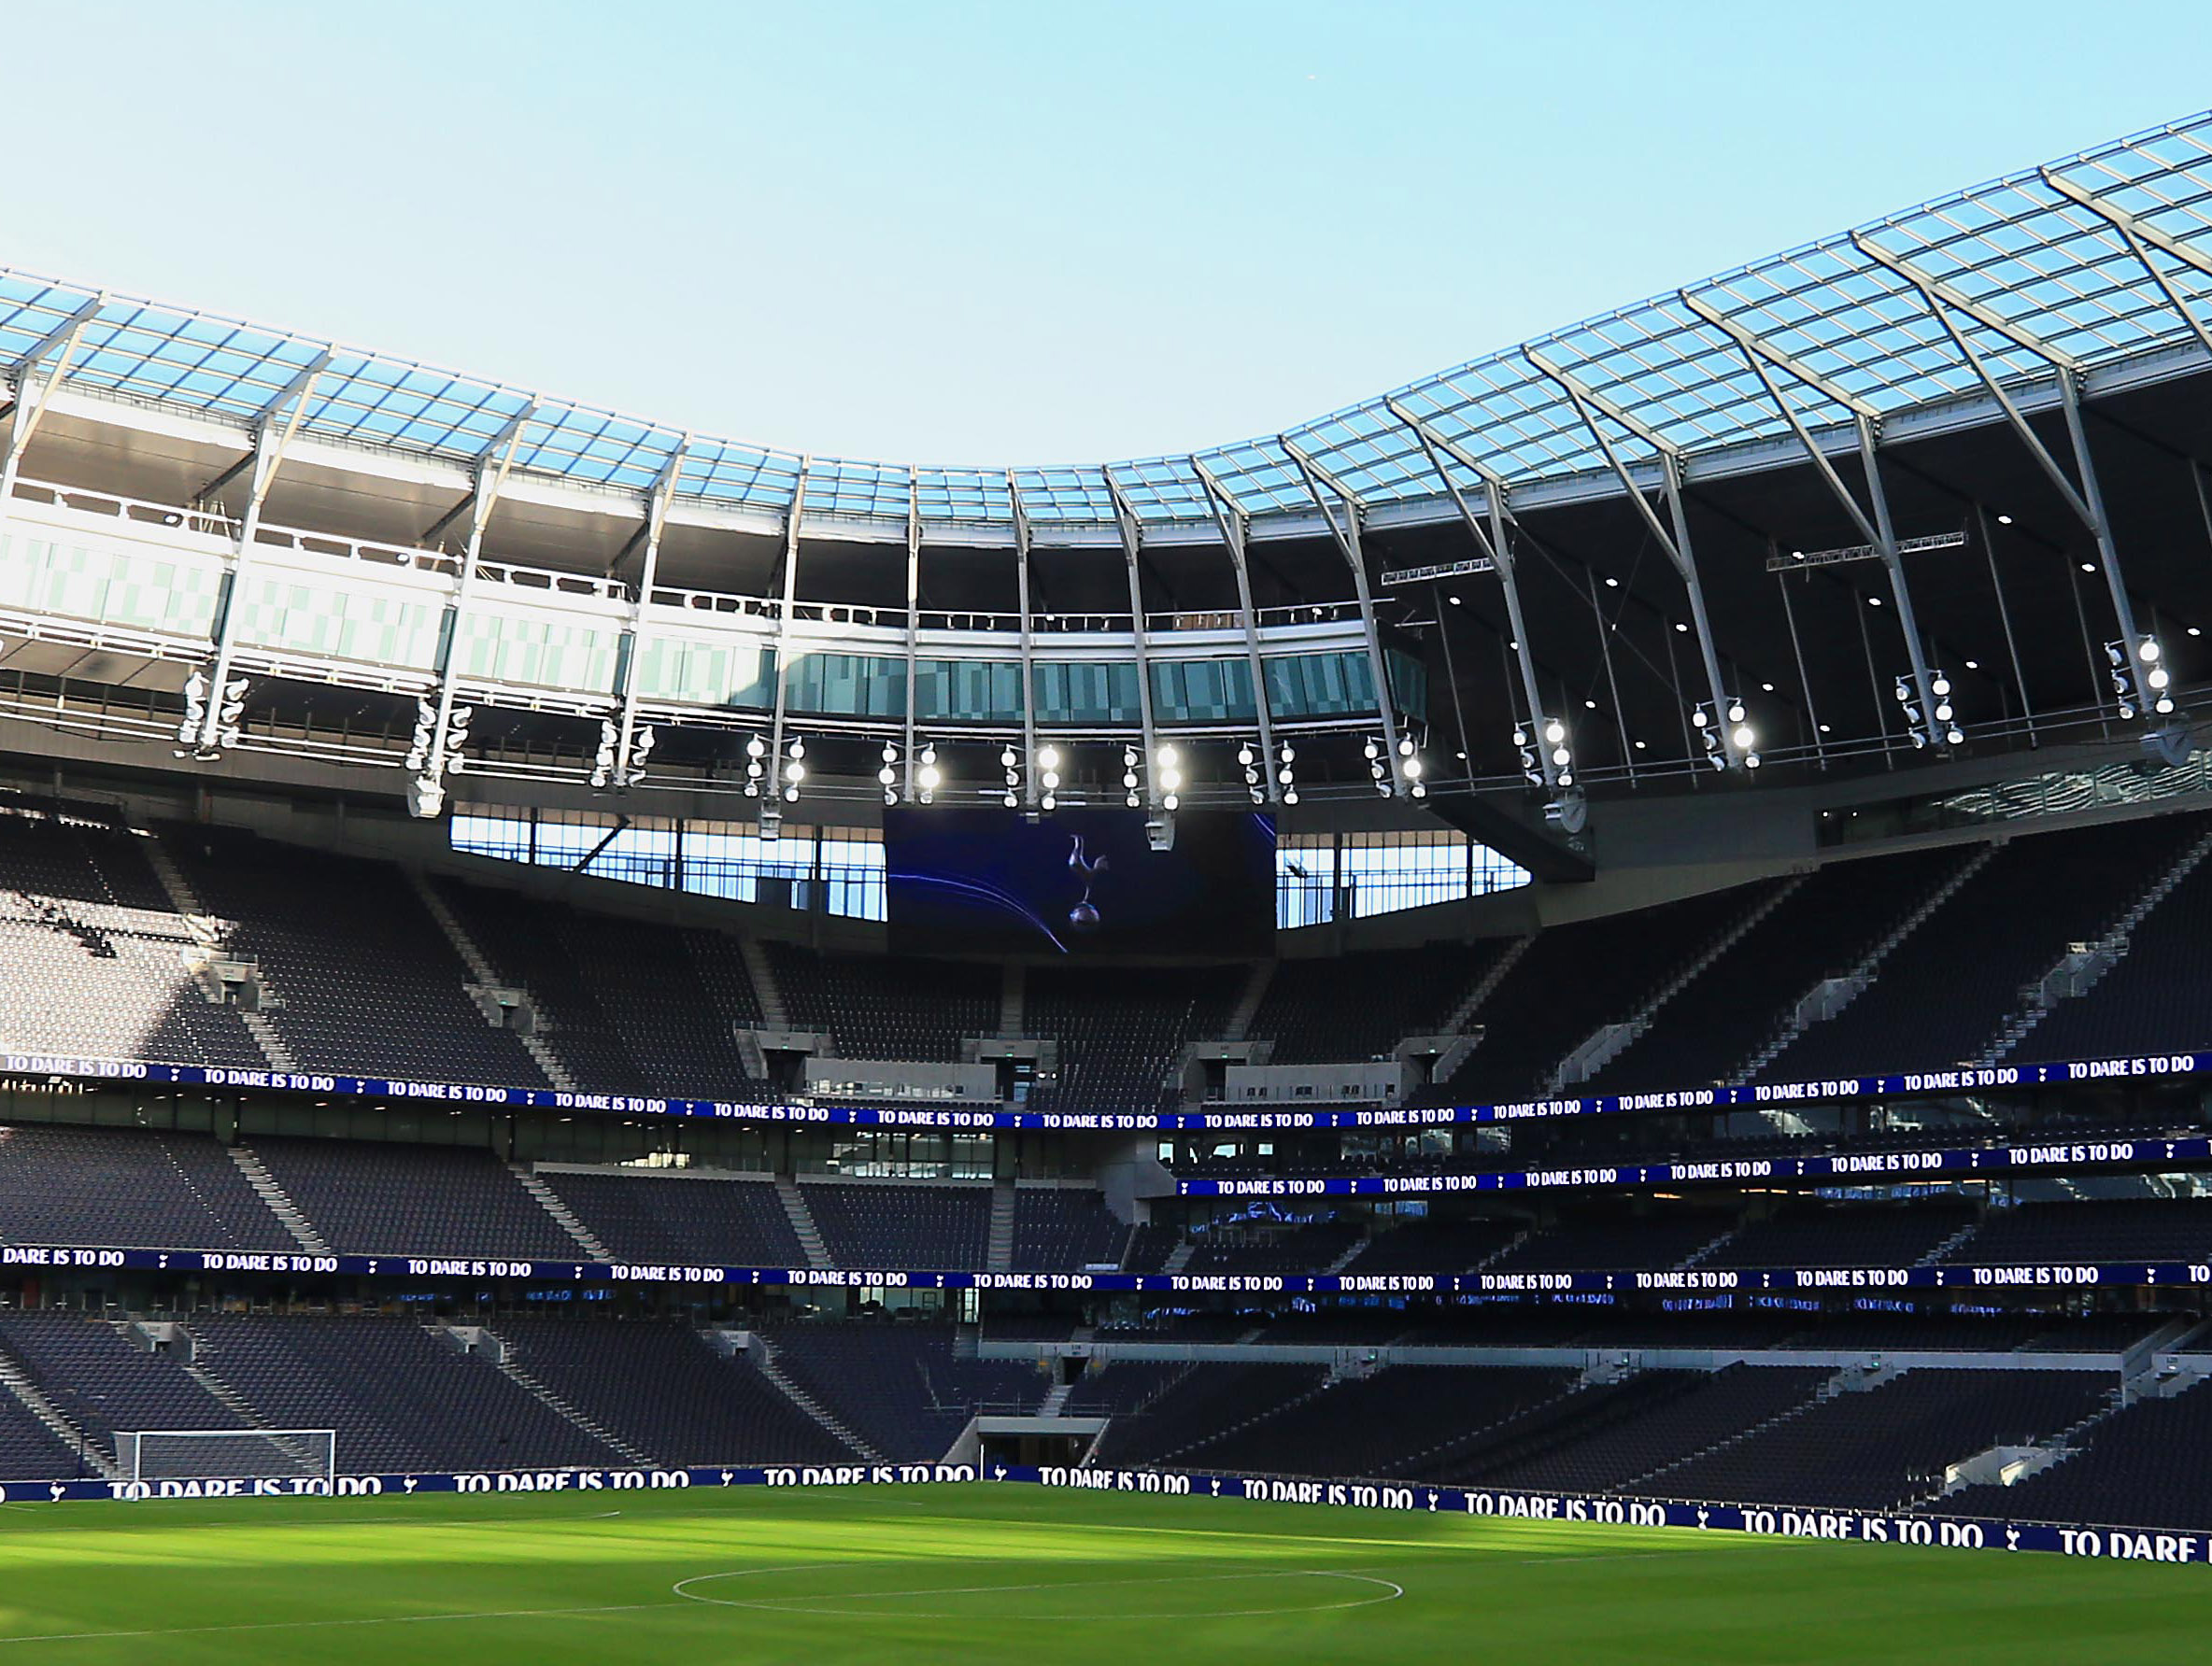 <p>LONDON,ENGLAND &#8211; DECEMBER 16:  A general view of inside the new stadium during the Tottenham Hotspur New Stadium Fan Event on December 15, 2018 in  London,United Kingdom. (Photo by Tottenham Hotspur FC/Tottenham Hotspur FC via Getty Images)</p>